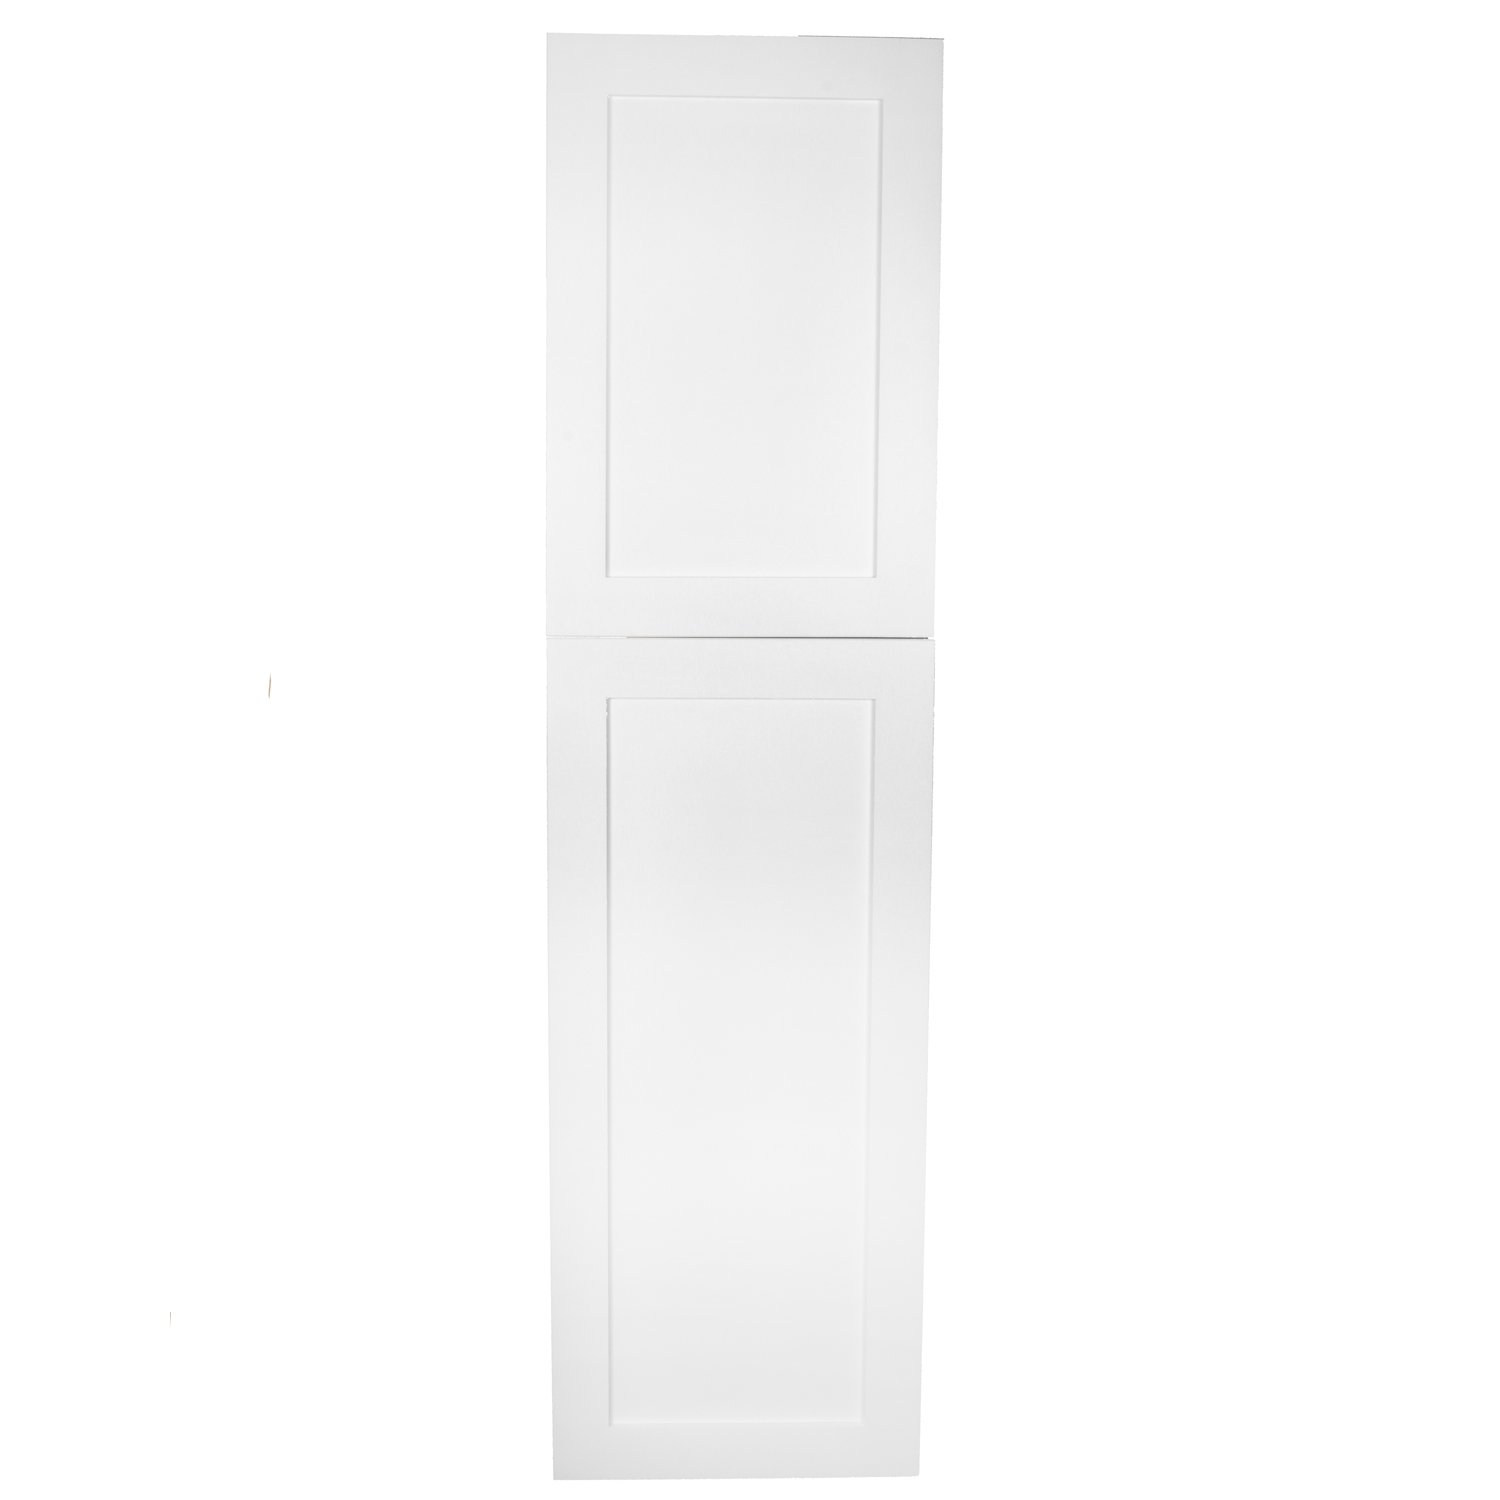 WG Wood Products Shaker Style Frameless Recessed Wall Bathroom Medicine Storage Pantry Cabinet with Multiple Finishes, 56'', White Enamel by WG Wood Products (Image #4)